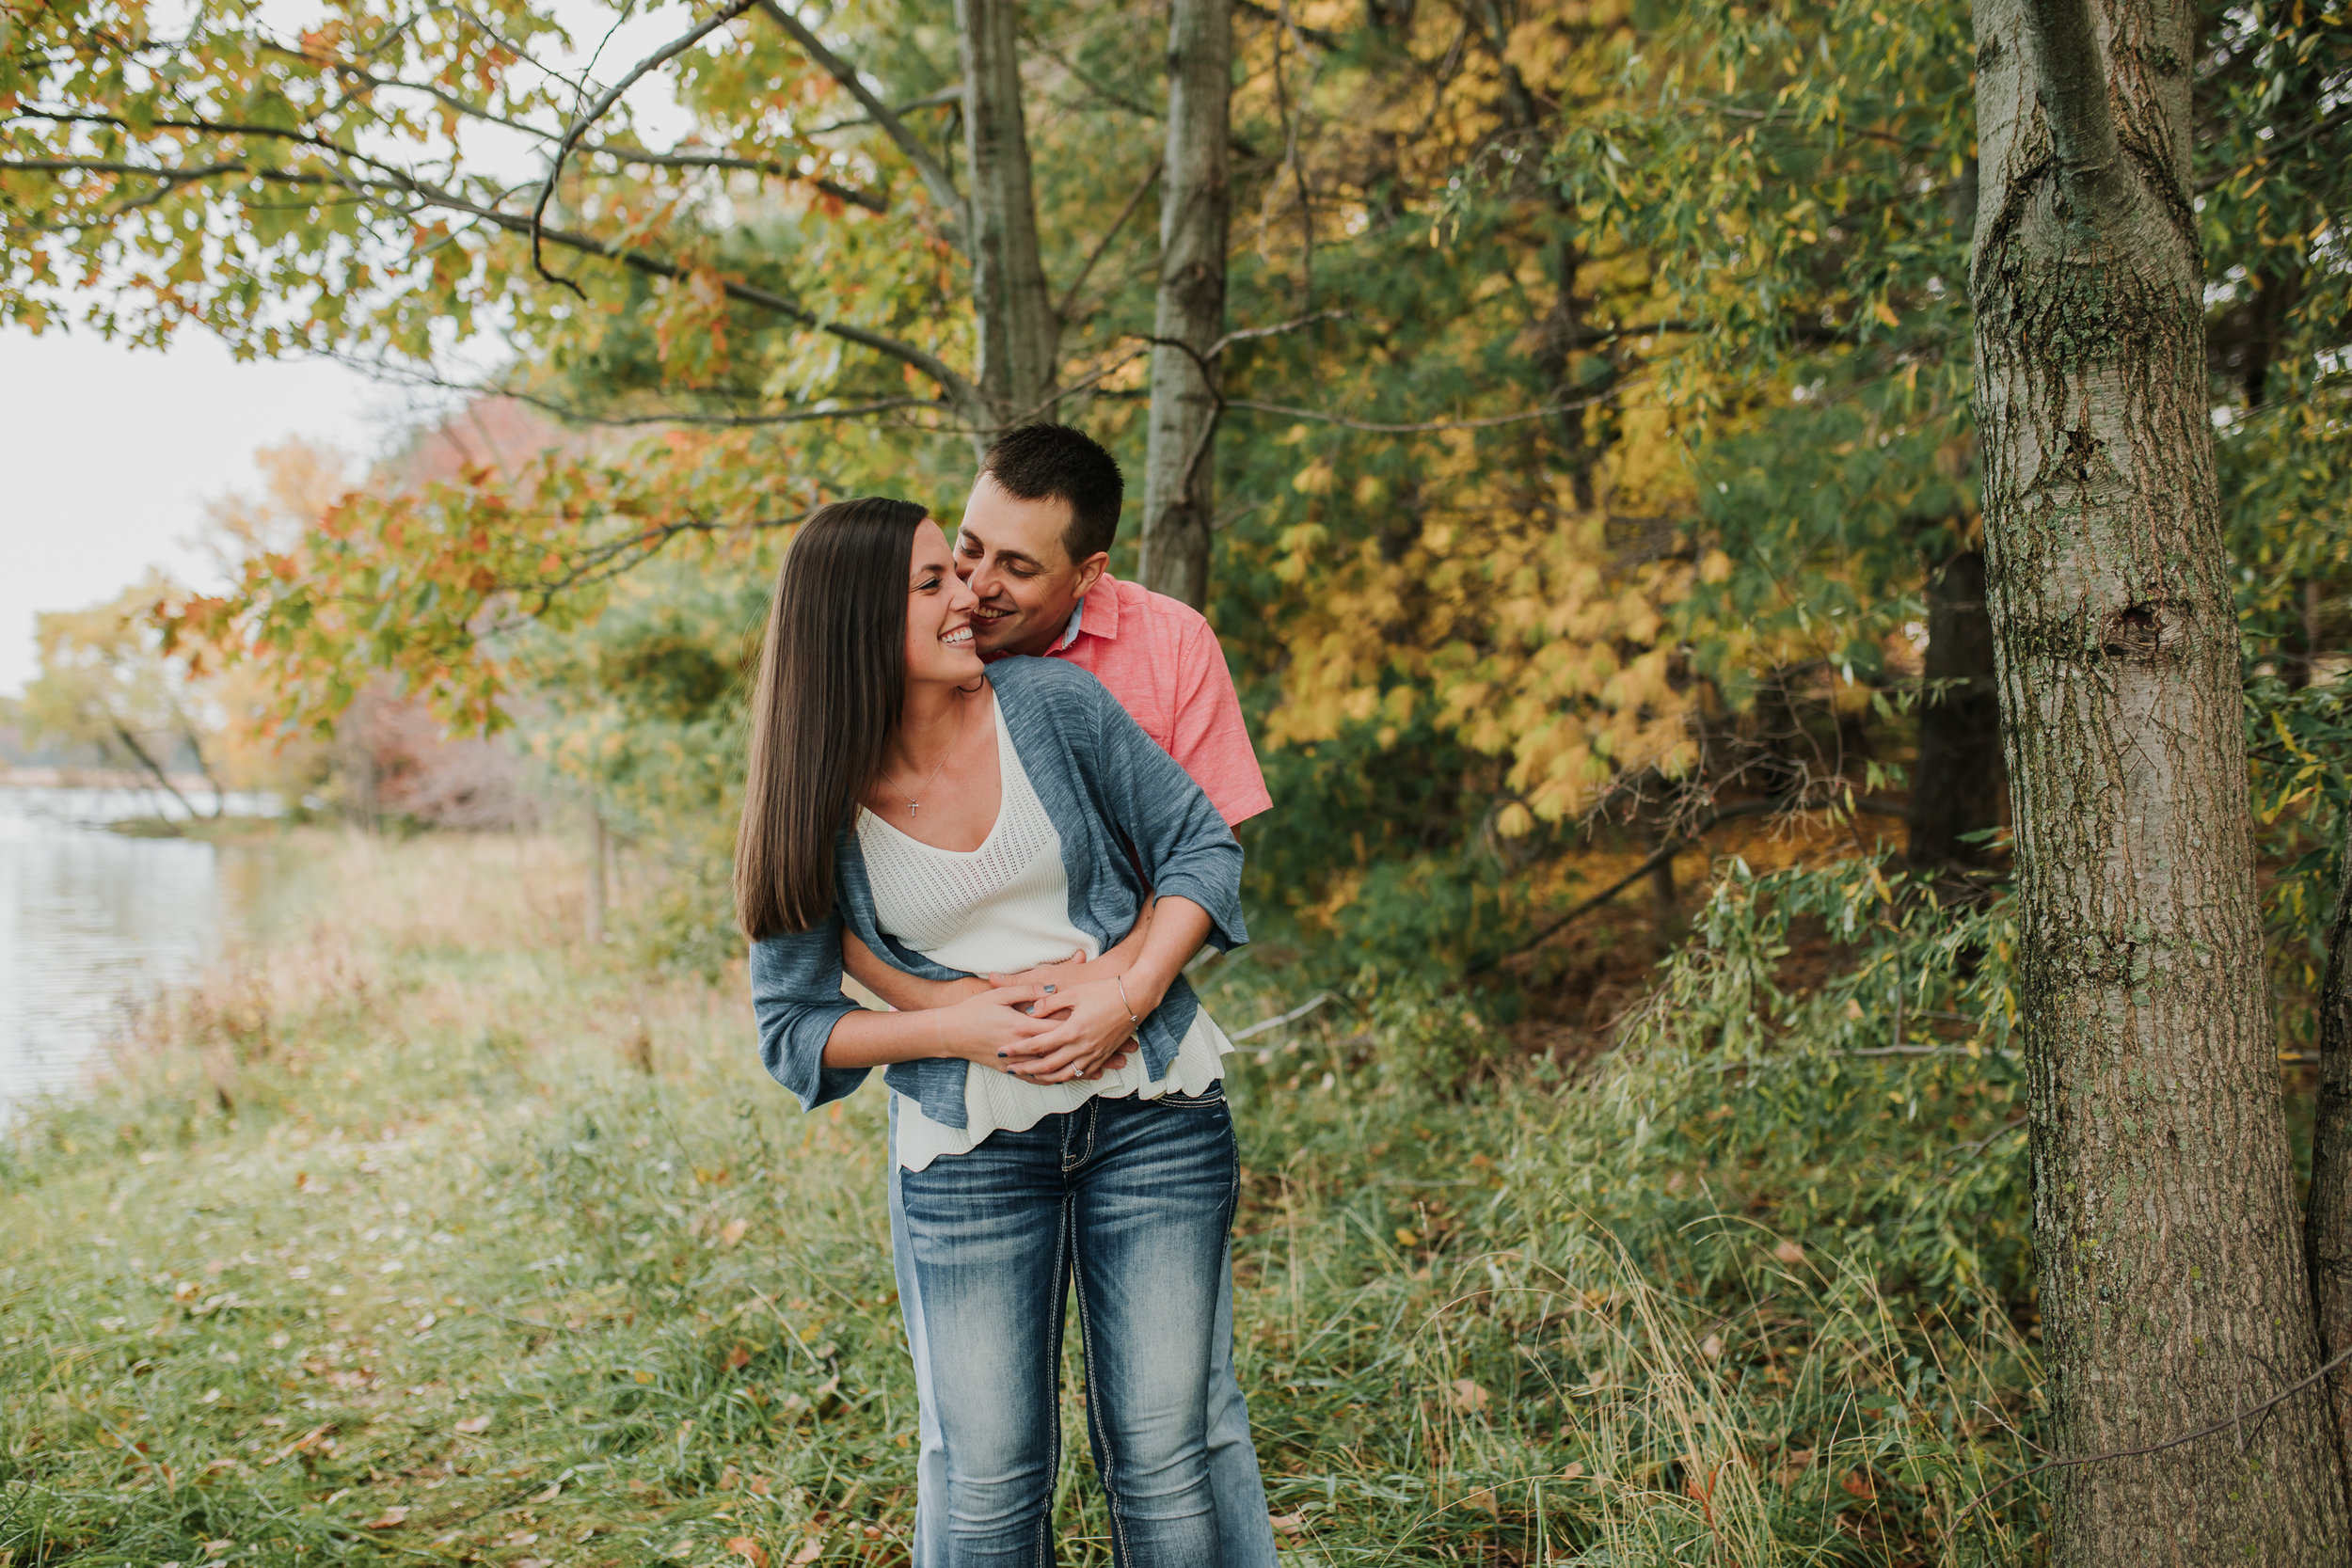 Hannah & Brett - Engaged - Nathaniel Jensen Photography - Omaha Nebraska Wedding Photograper - Omaha Nebraska Engagement Session - Chalco Hills Engagement Session-57.jpg